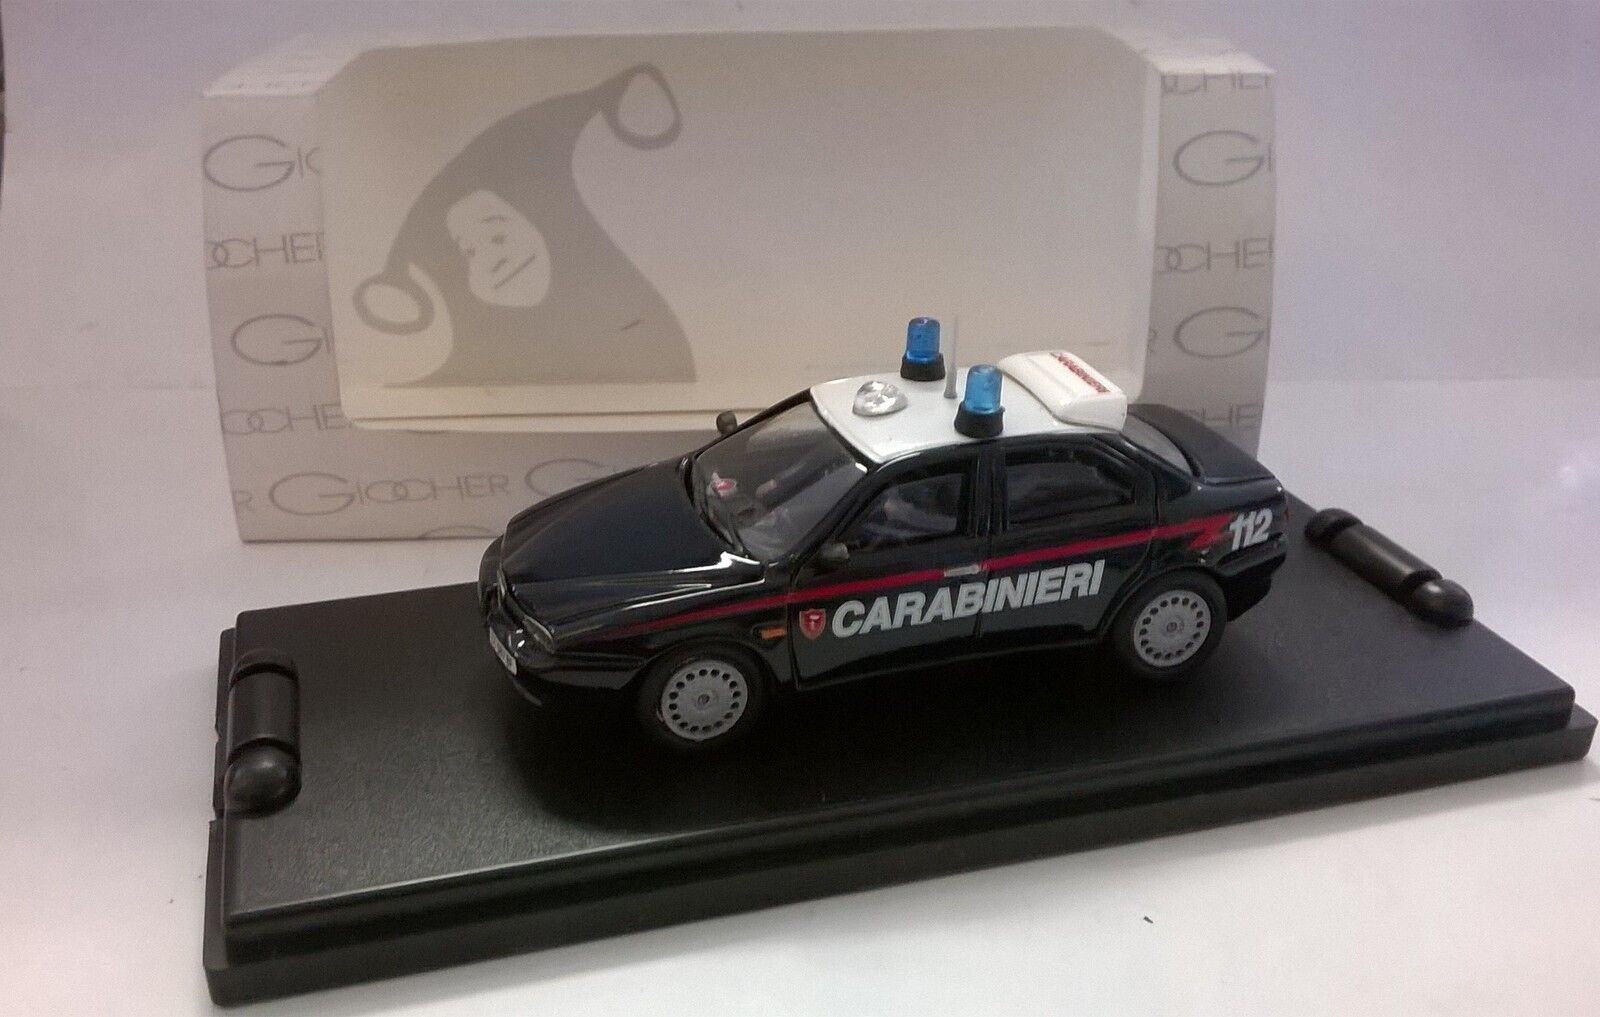 GIOCHER 1 43 AUTO DIE CAST ALFA 156 CARABINIERI ART AR04 MADE IN ITALY